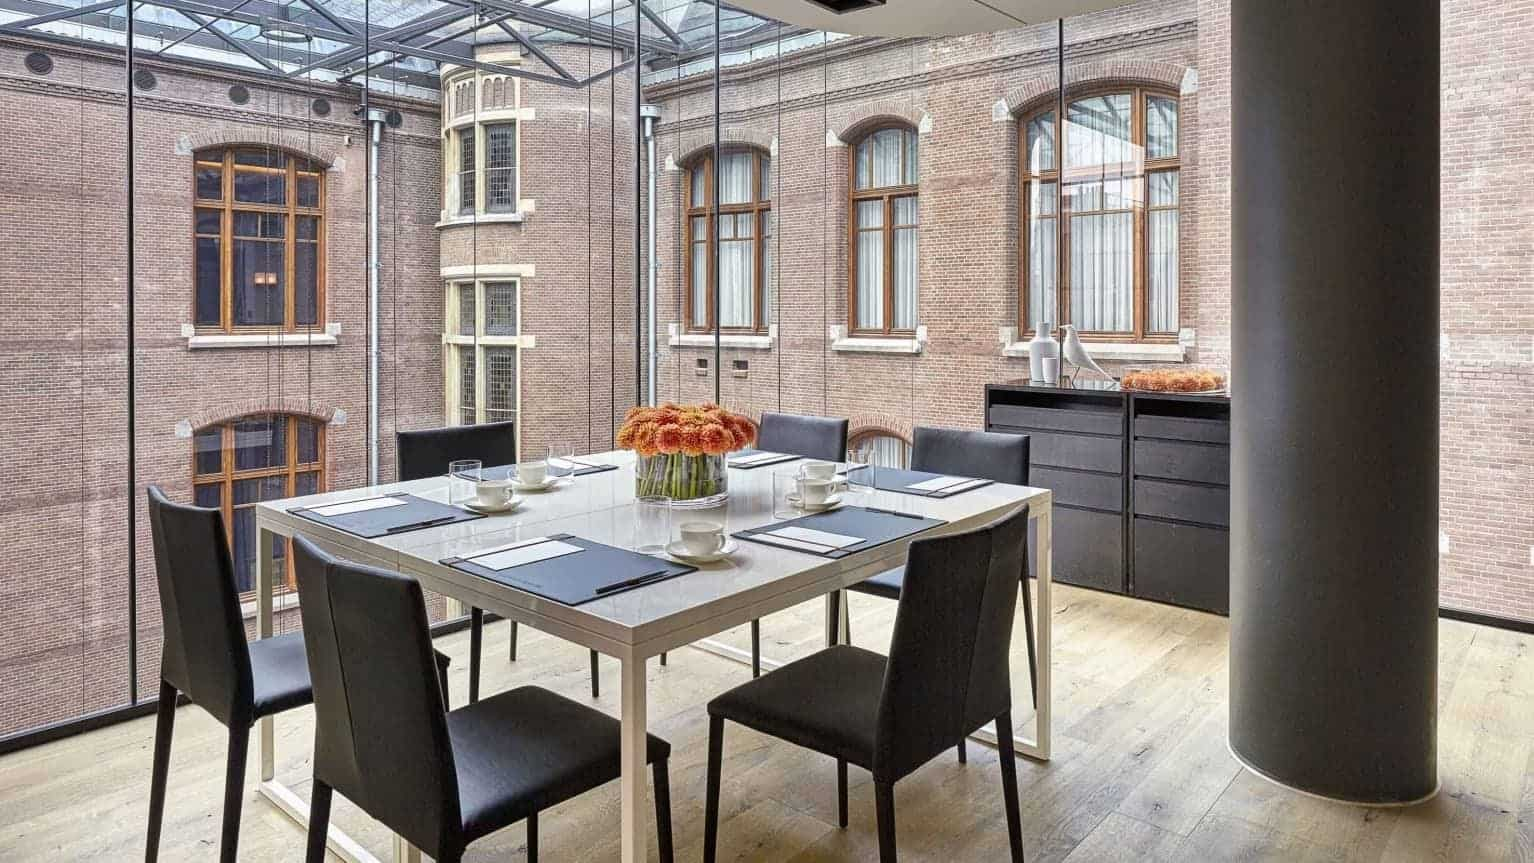 Stunning Boardroom in Amsterdam with Glass Walls